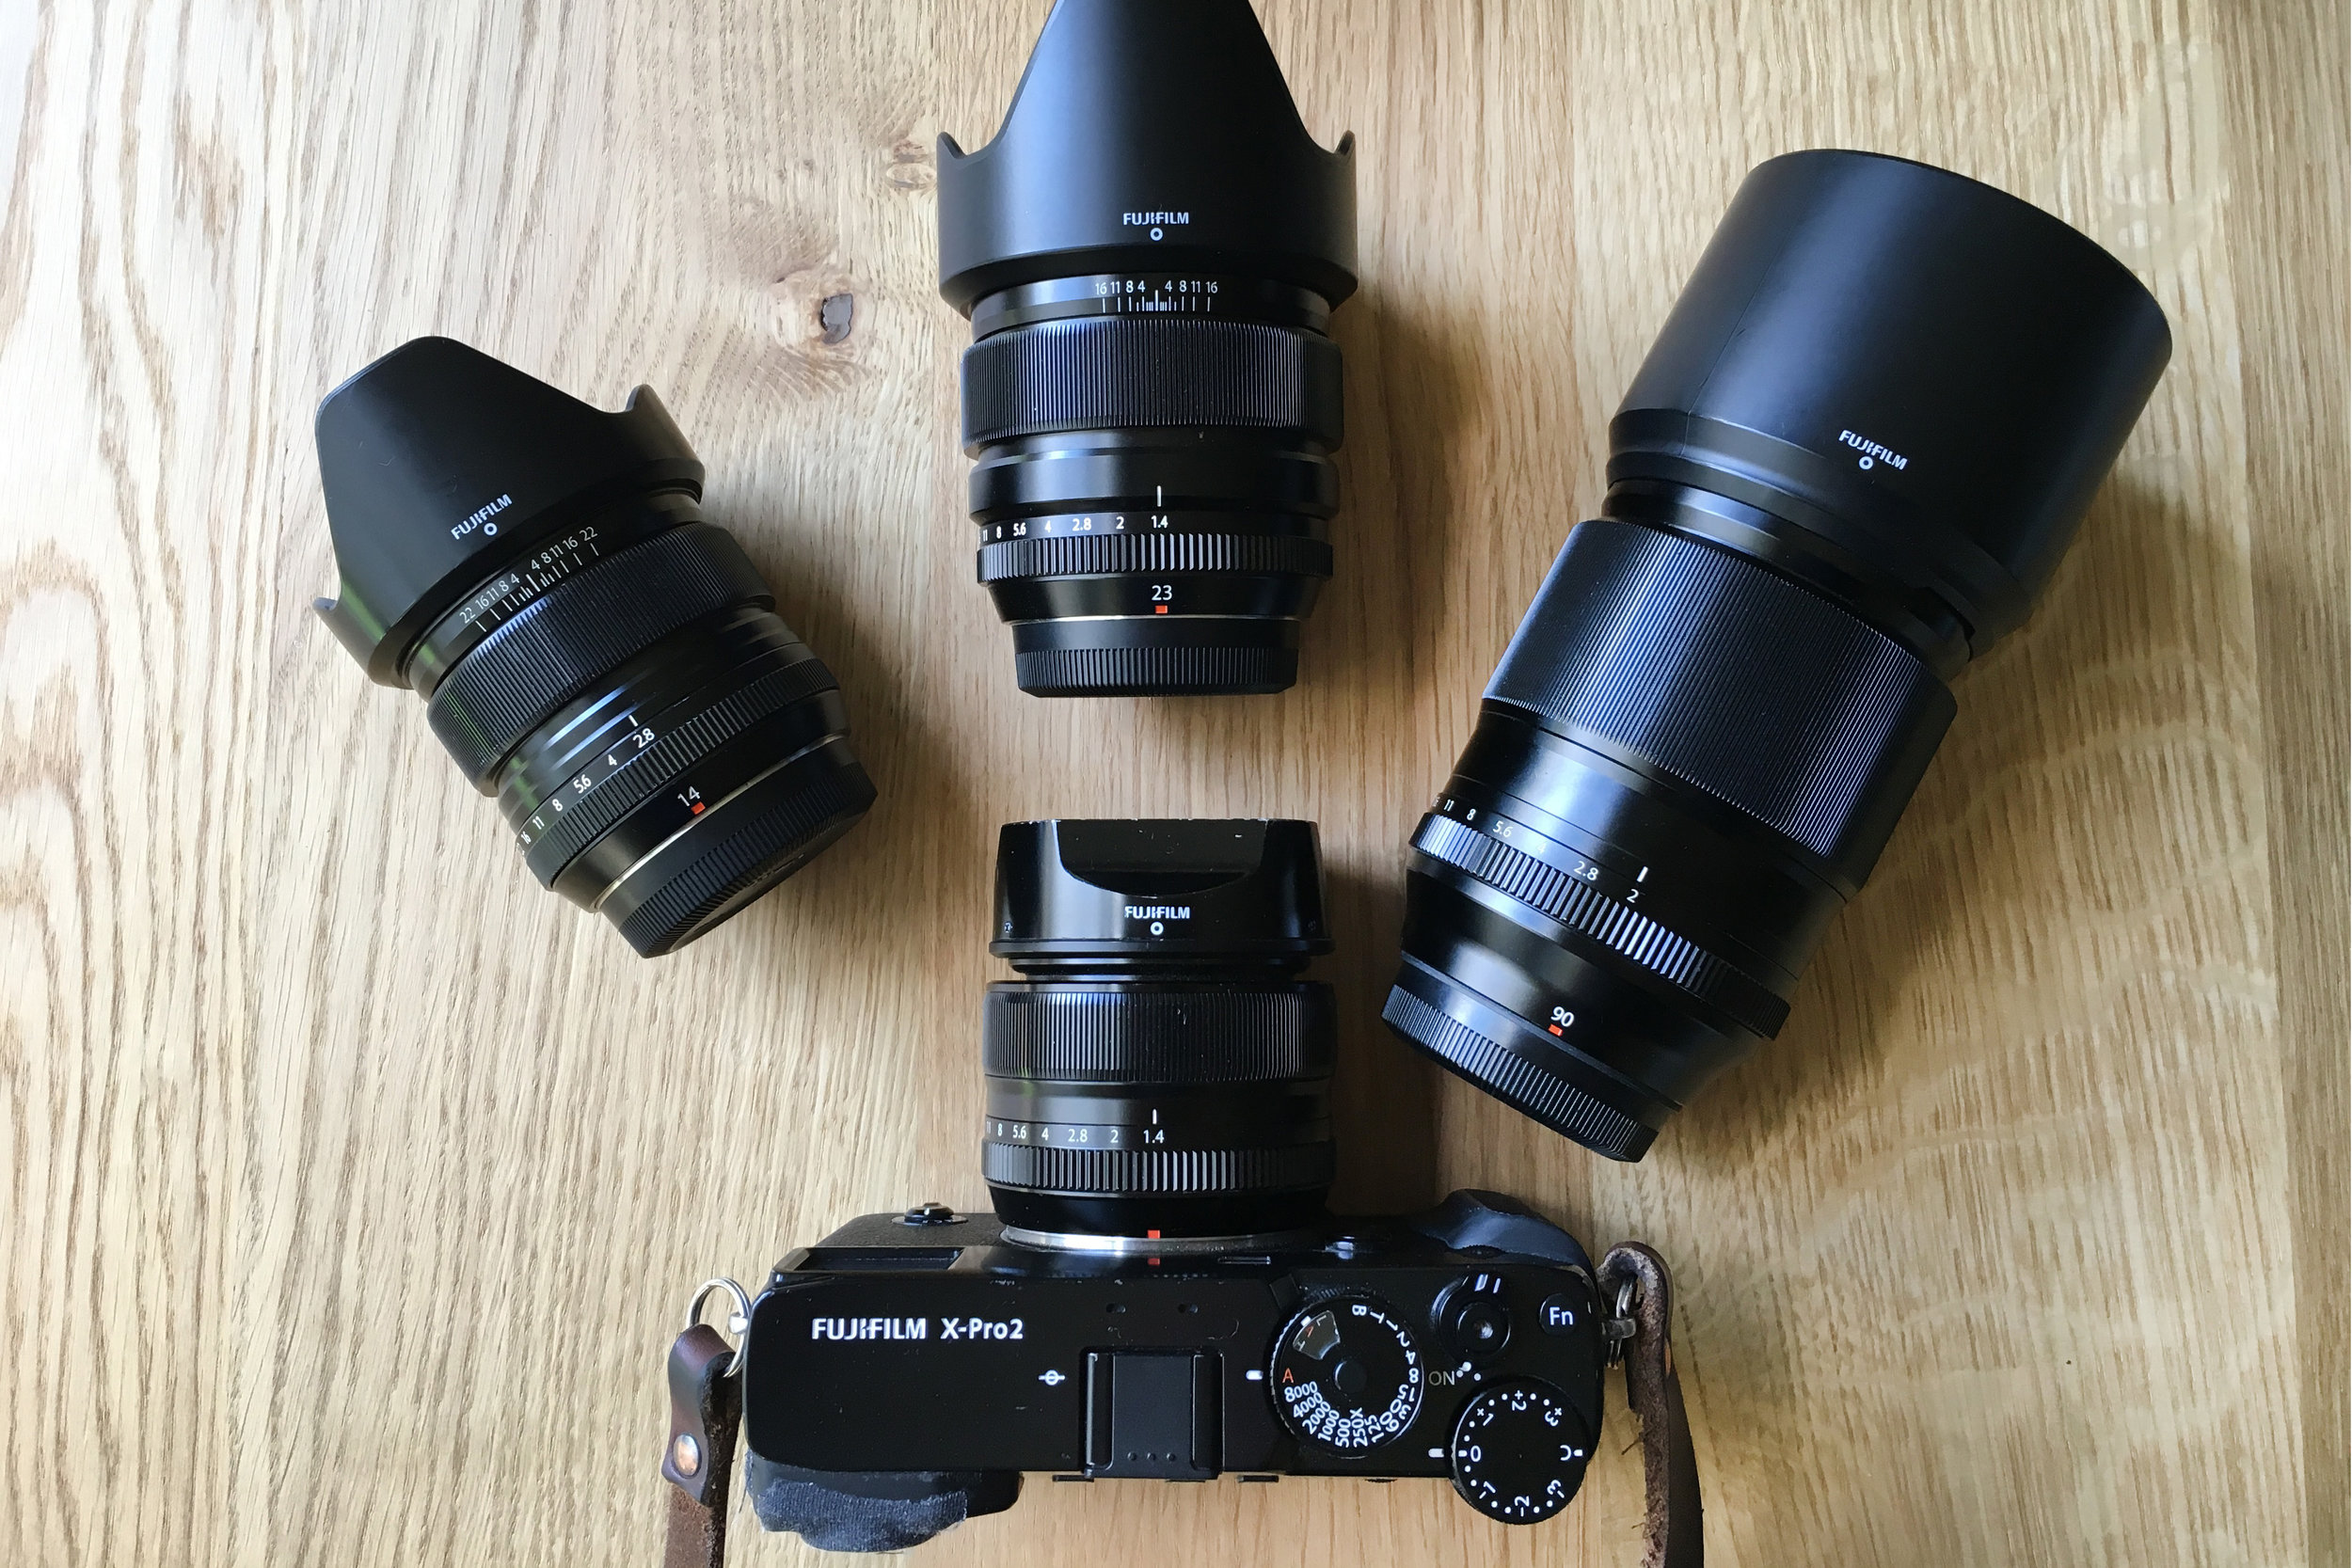 My current setup for travel. Fujifilm X-Pro with  XF 35mm f/1.4 R  mounted. From left to right;  XF 14mm f/2.8 R ,  XF 23mm f/1.4 R ,  XF 90mm f/2 R WR